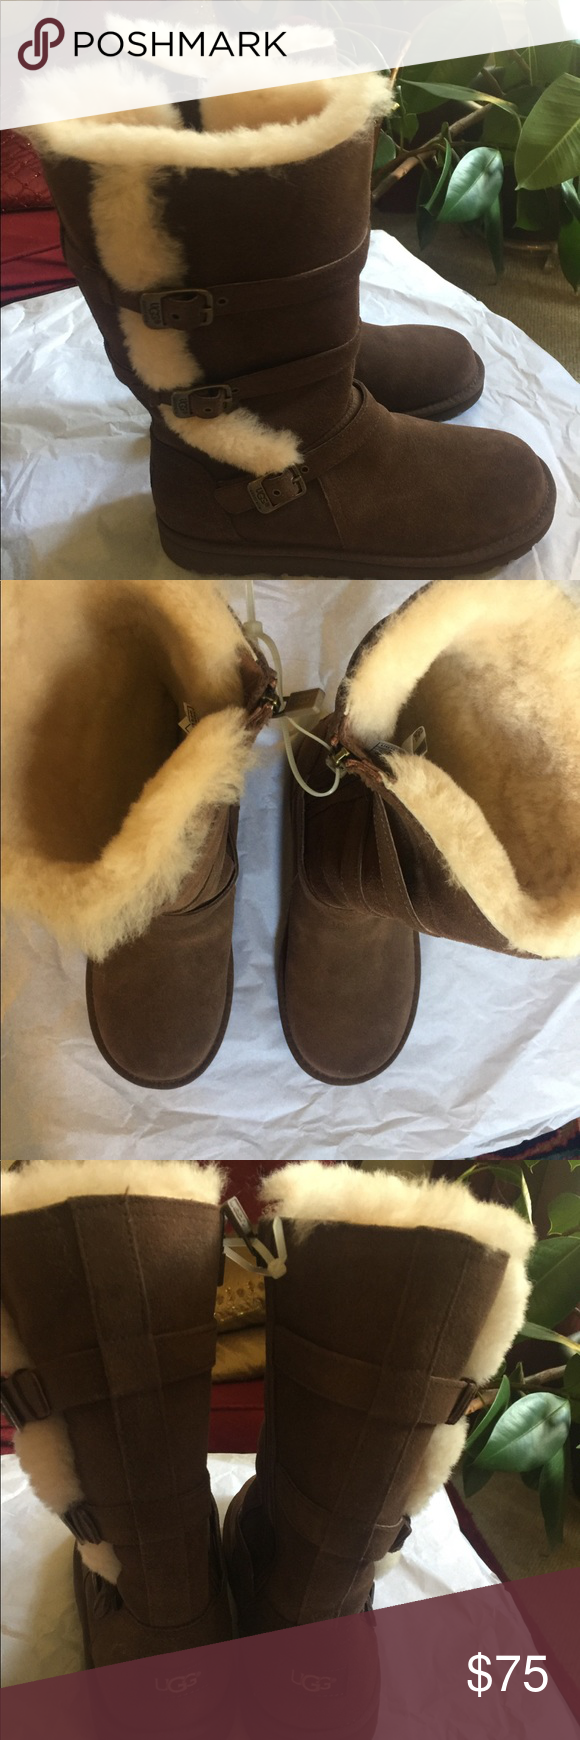 Sold No Longer Available Uggs Womens Uggs